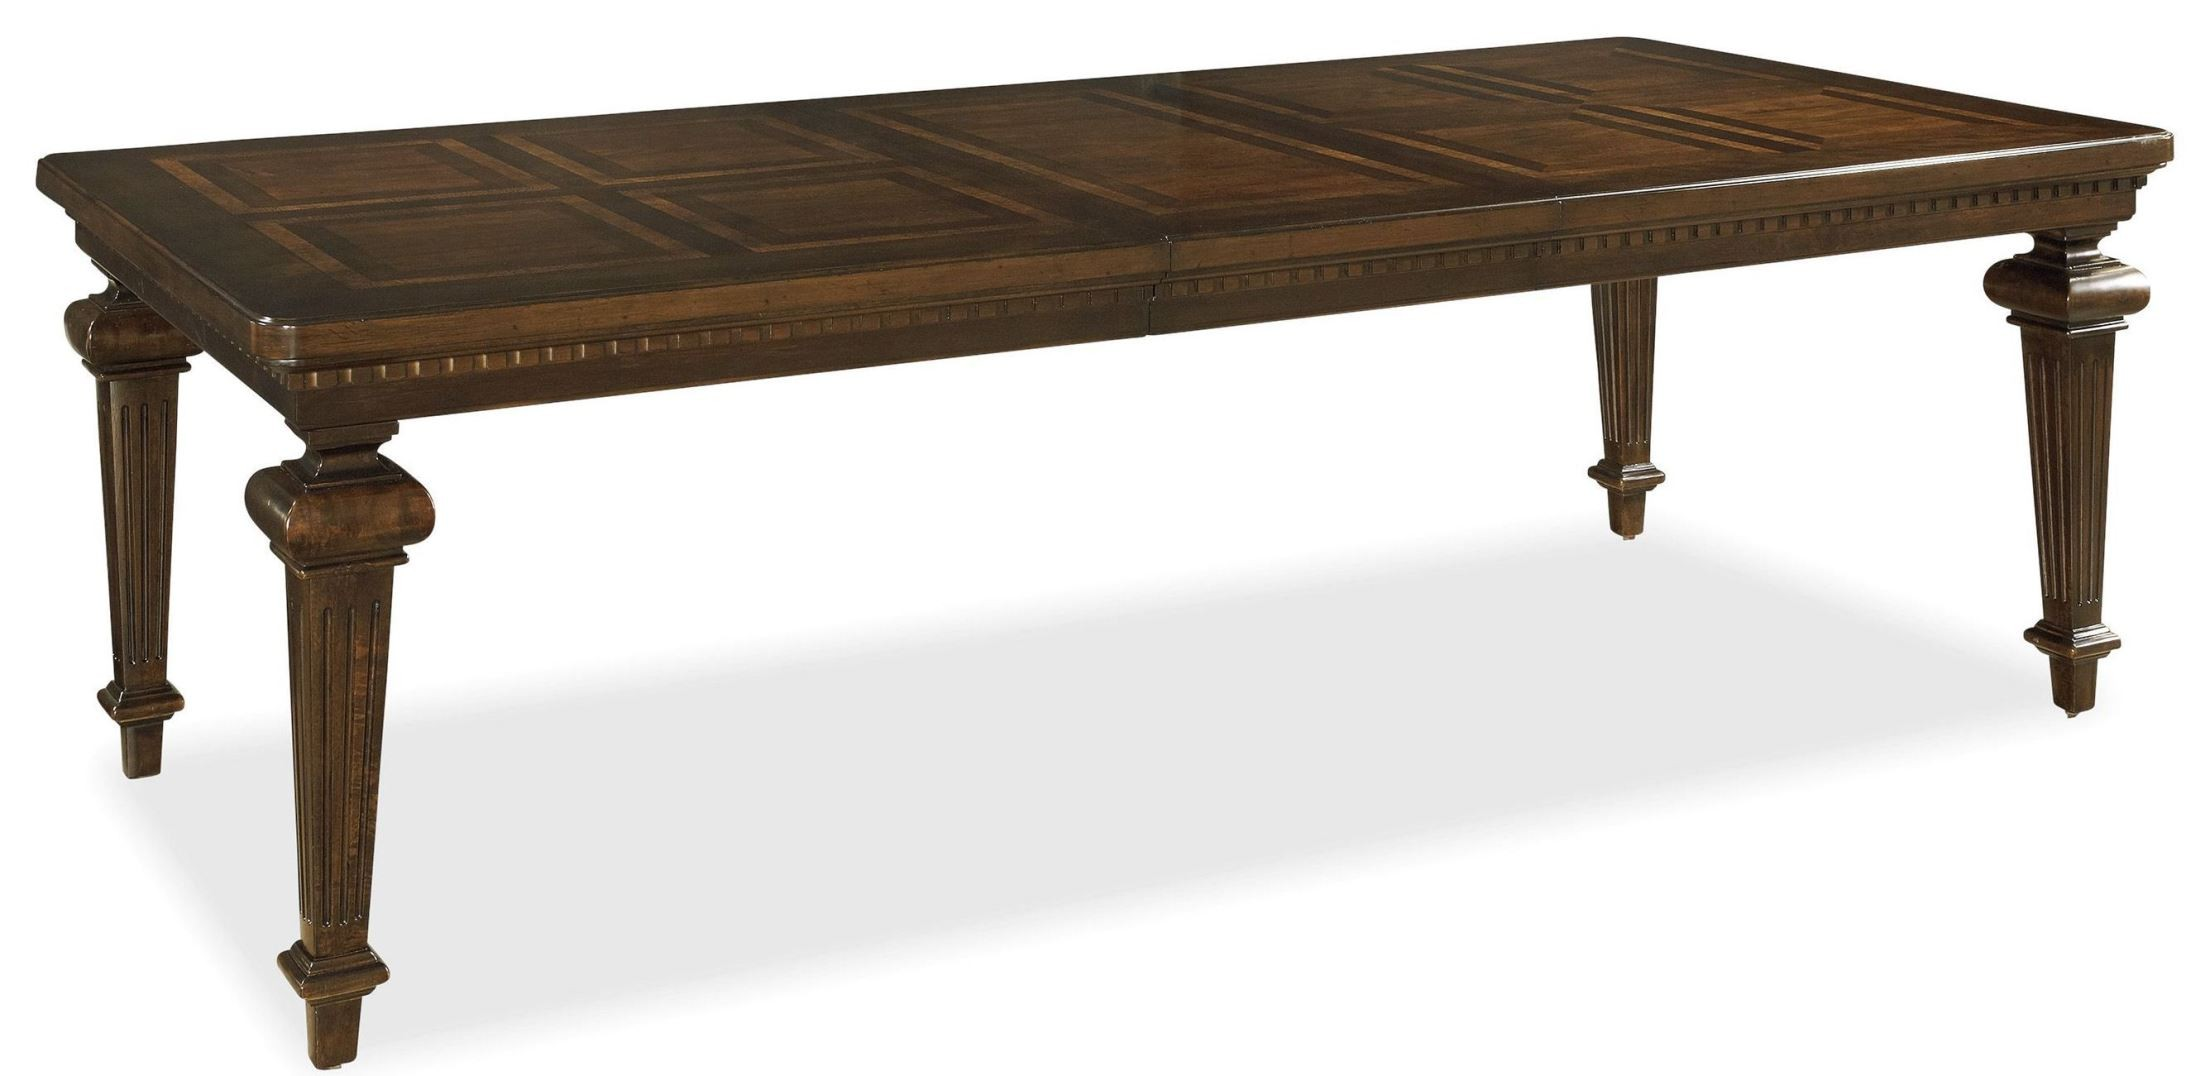 Proximity rectangular extendable dining room table from universal 356653 coleman furniture - Rectangular dining table for 6 ...